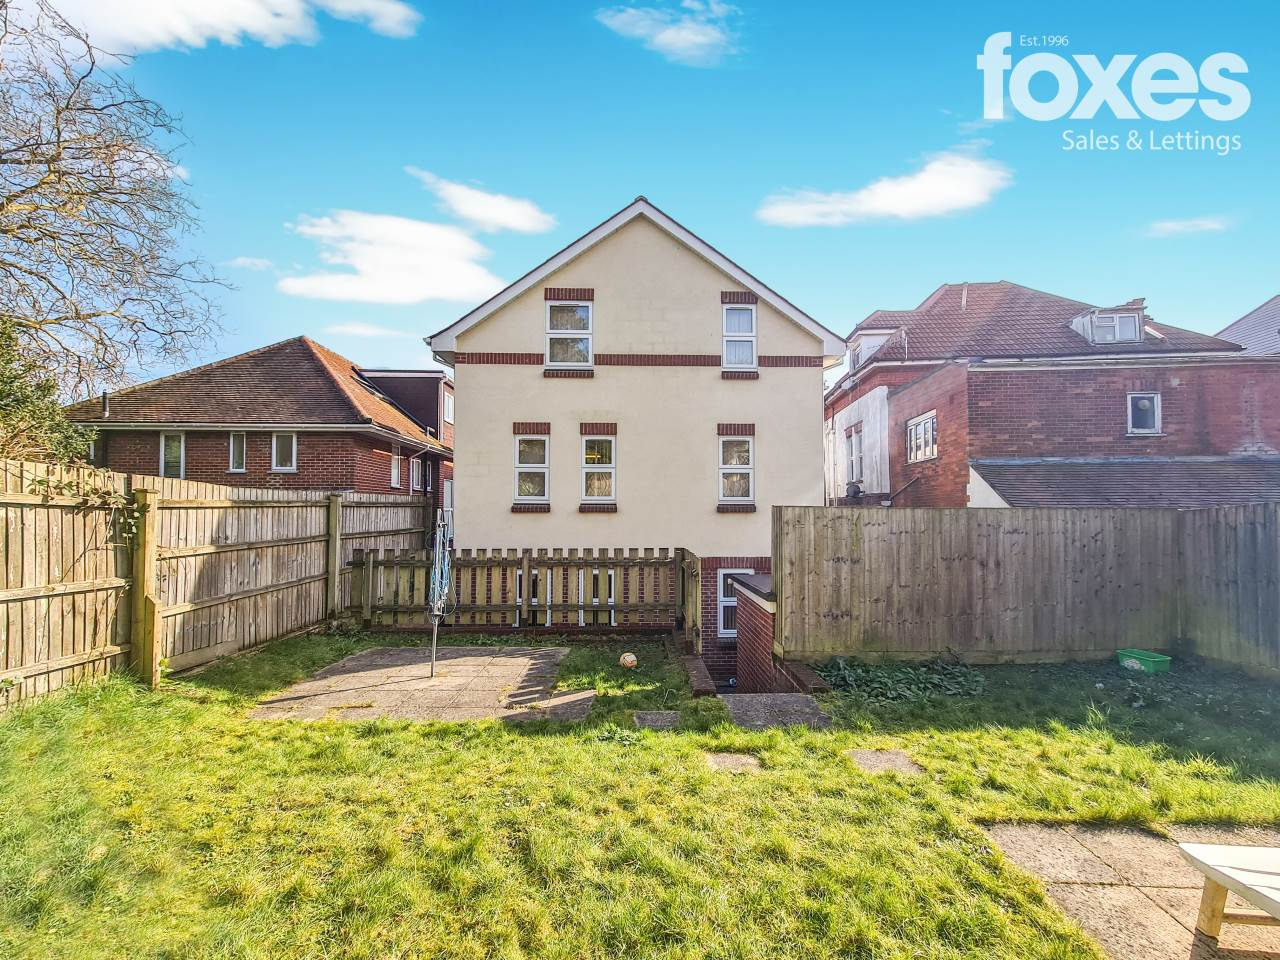 1 bed flat to rent in Frances Road, Bournemouth, BH1